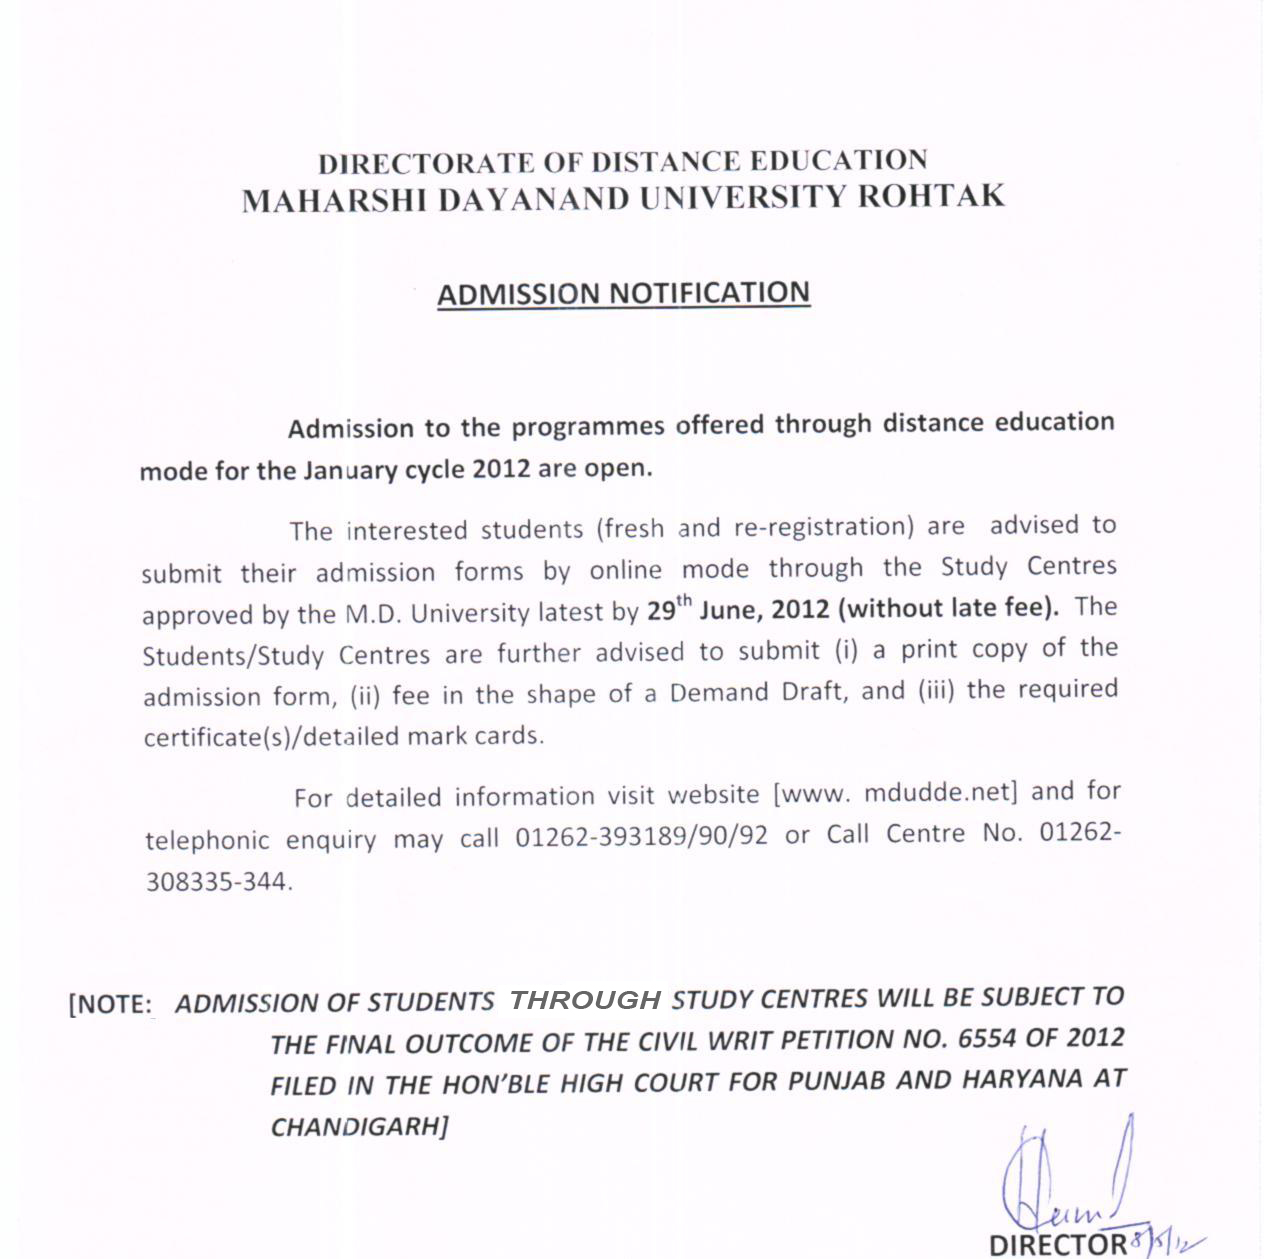 Maharshi dayanand university rohtak admission notification jan 2012 imp letter for students centres yelopaper Gallery